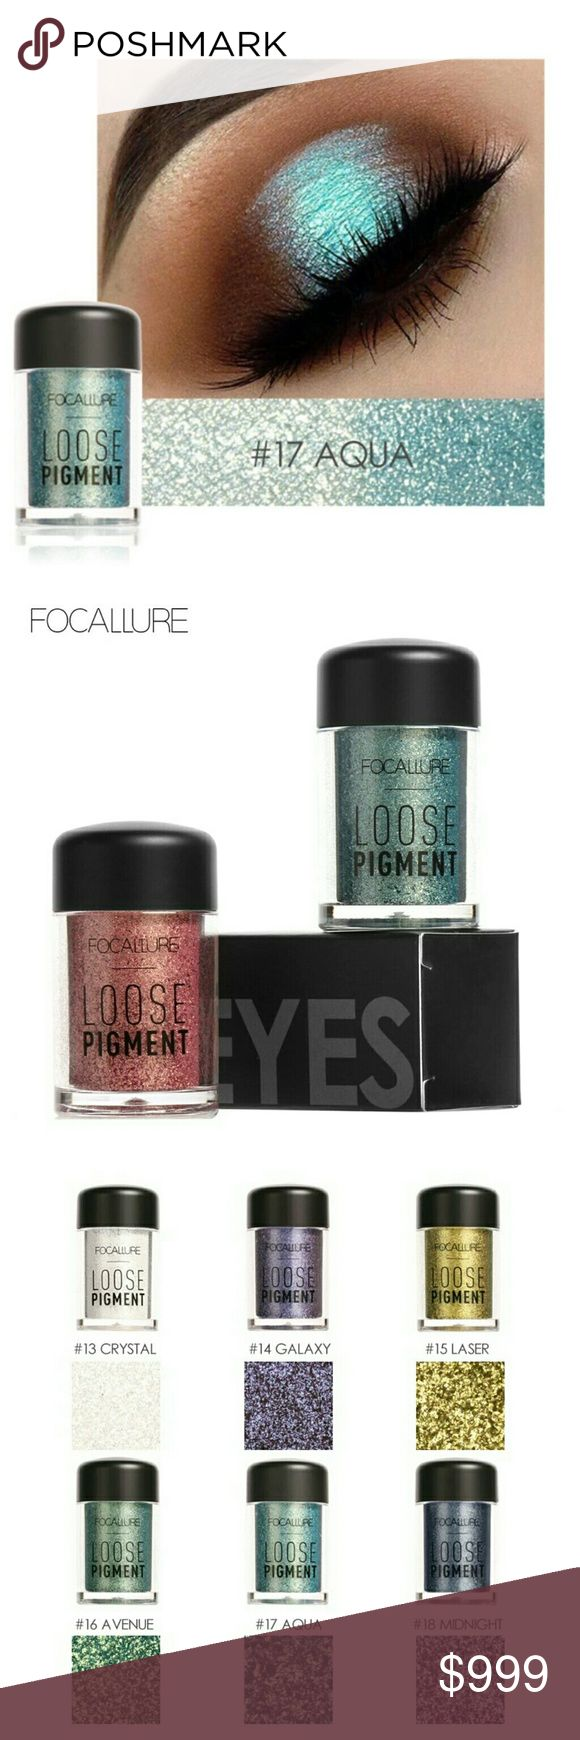 : JUST IN : FOCALLURE Glimmer Eye Powder #17 Aqua FOCALLURE Loose Pigment Eye Shadow gives your eyes extra sparkle & dimension with a highly pigmented metallic texture! A concentrated powder that contains ingredients to help adhere to skin. Create a subtle wash of color or an intense effect. Does not streak or cake, long-lasting!   Also available in: Brown Blue & Rose Gold. See separate listings.  Net Wet:4.5g/.15oz Package contains 1 Eye Shadow Color: #17 Aqua  Please feel free to ask…